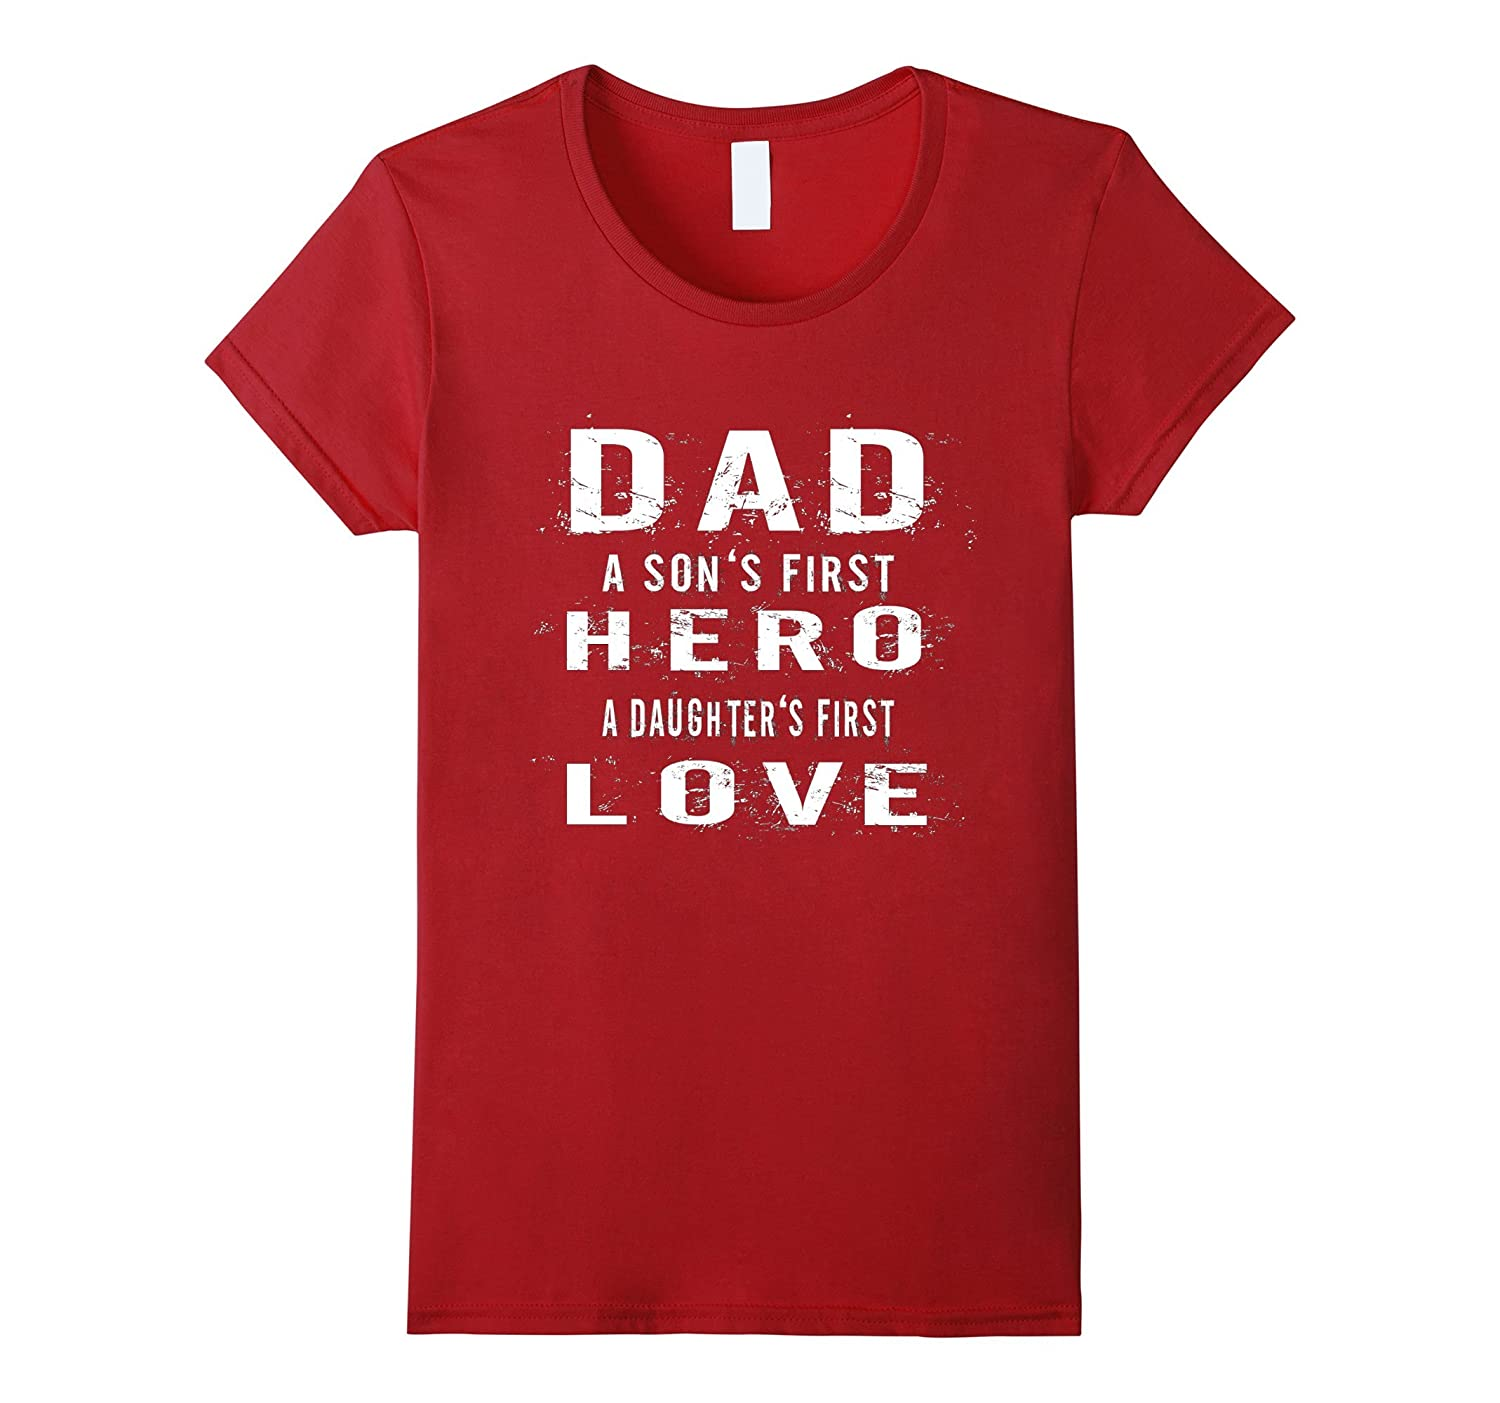 DAD A Son's First HERO A Daughter's First LOVE TShirt